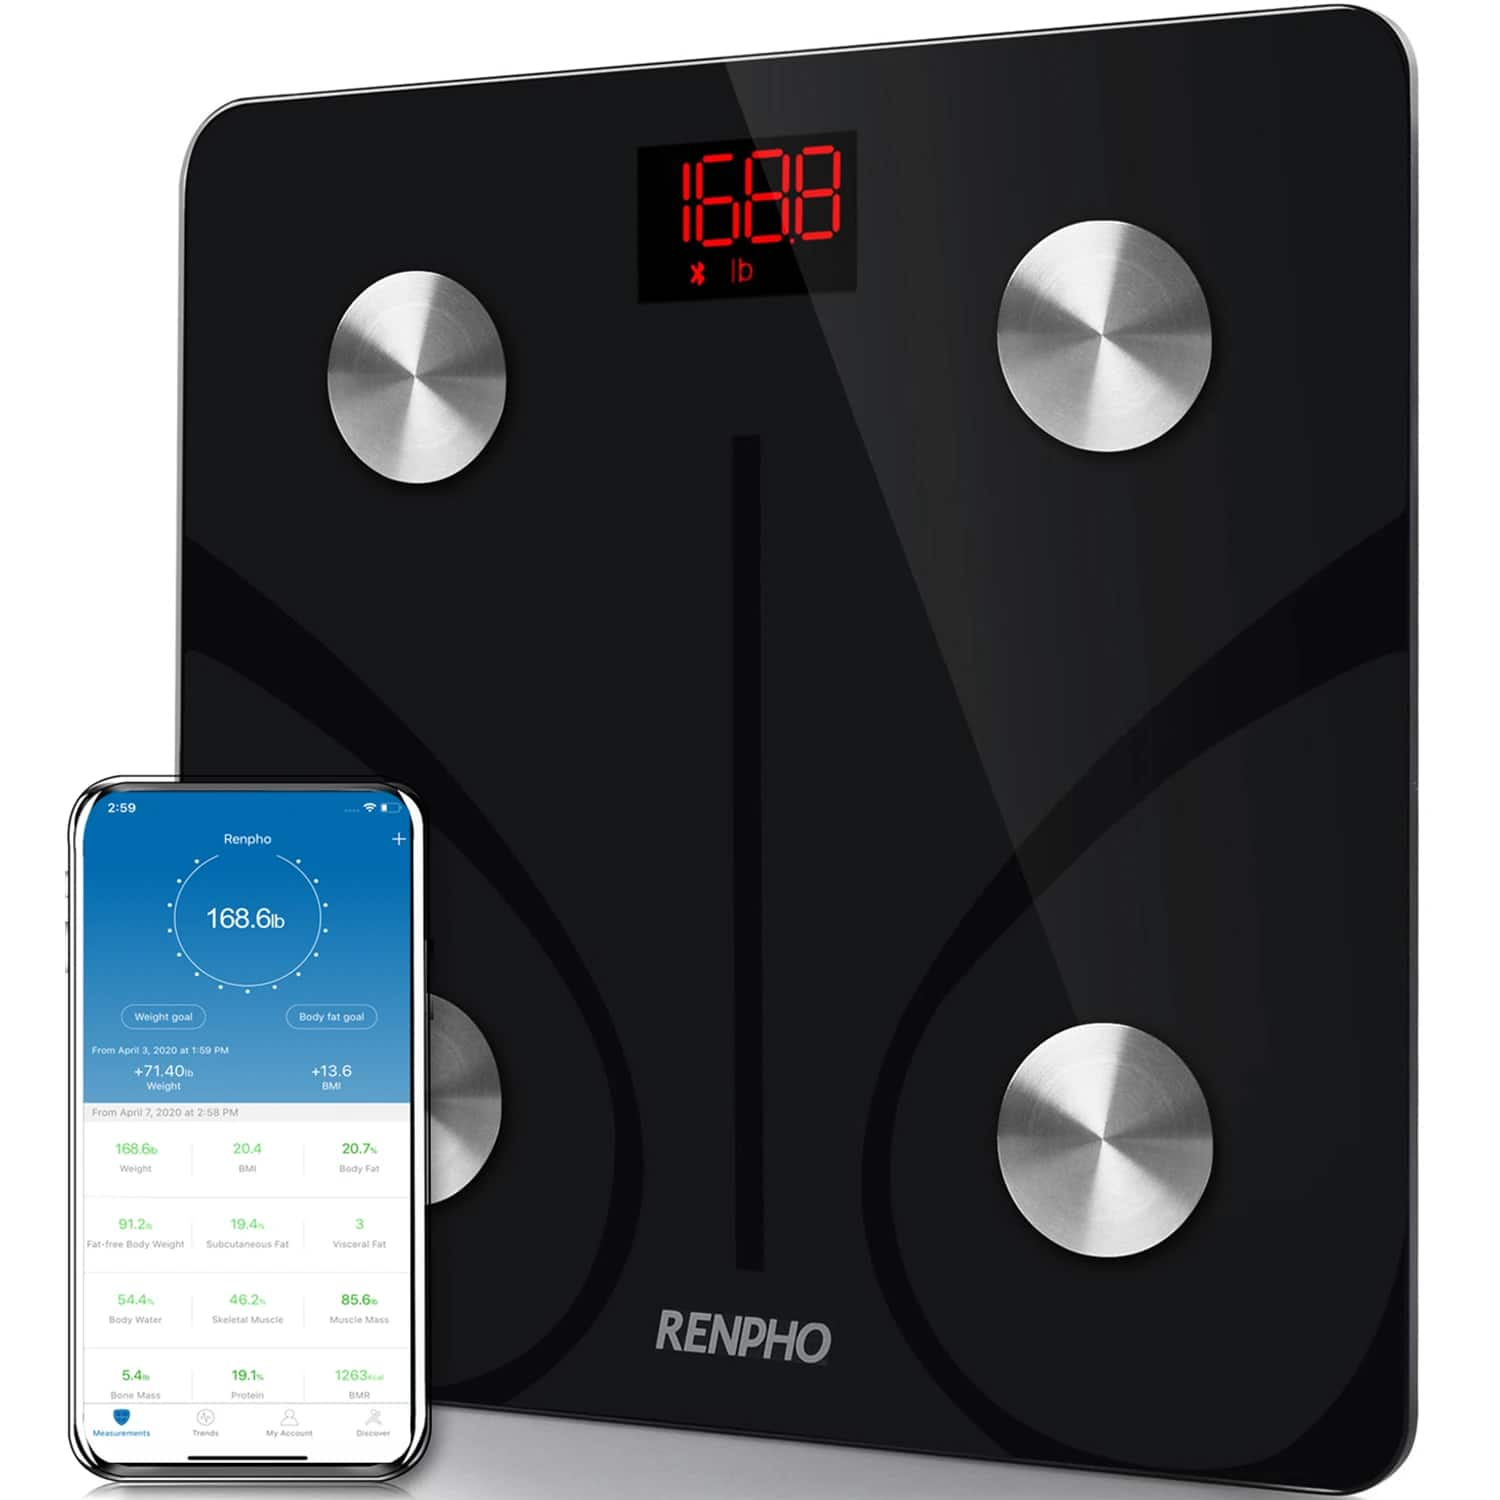 RENPHO Bluetooth Body Fat Scale, Body Composition Analyzer with Smartphone App $19.99 + free S/H